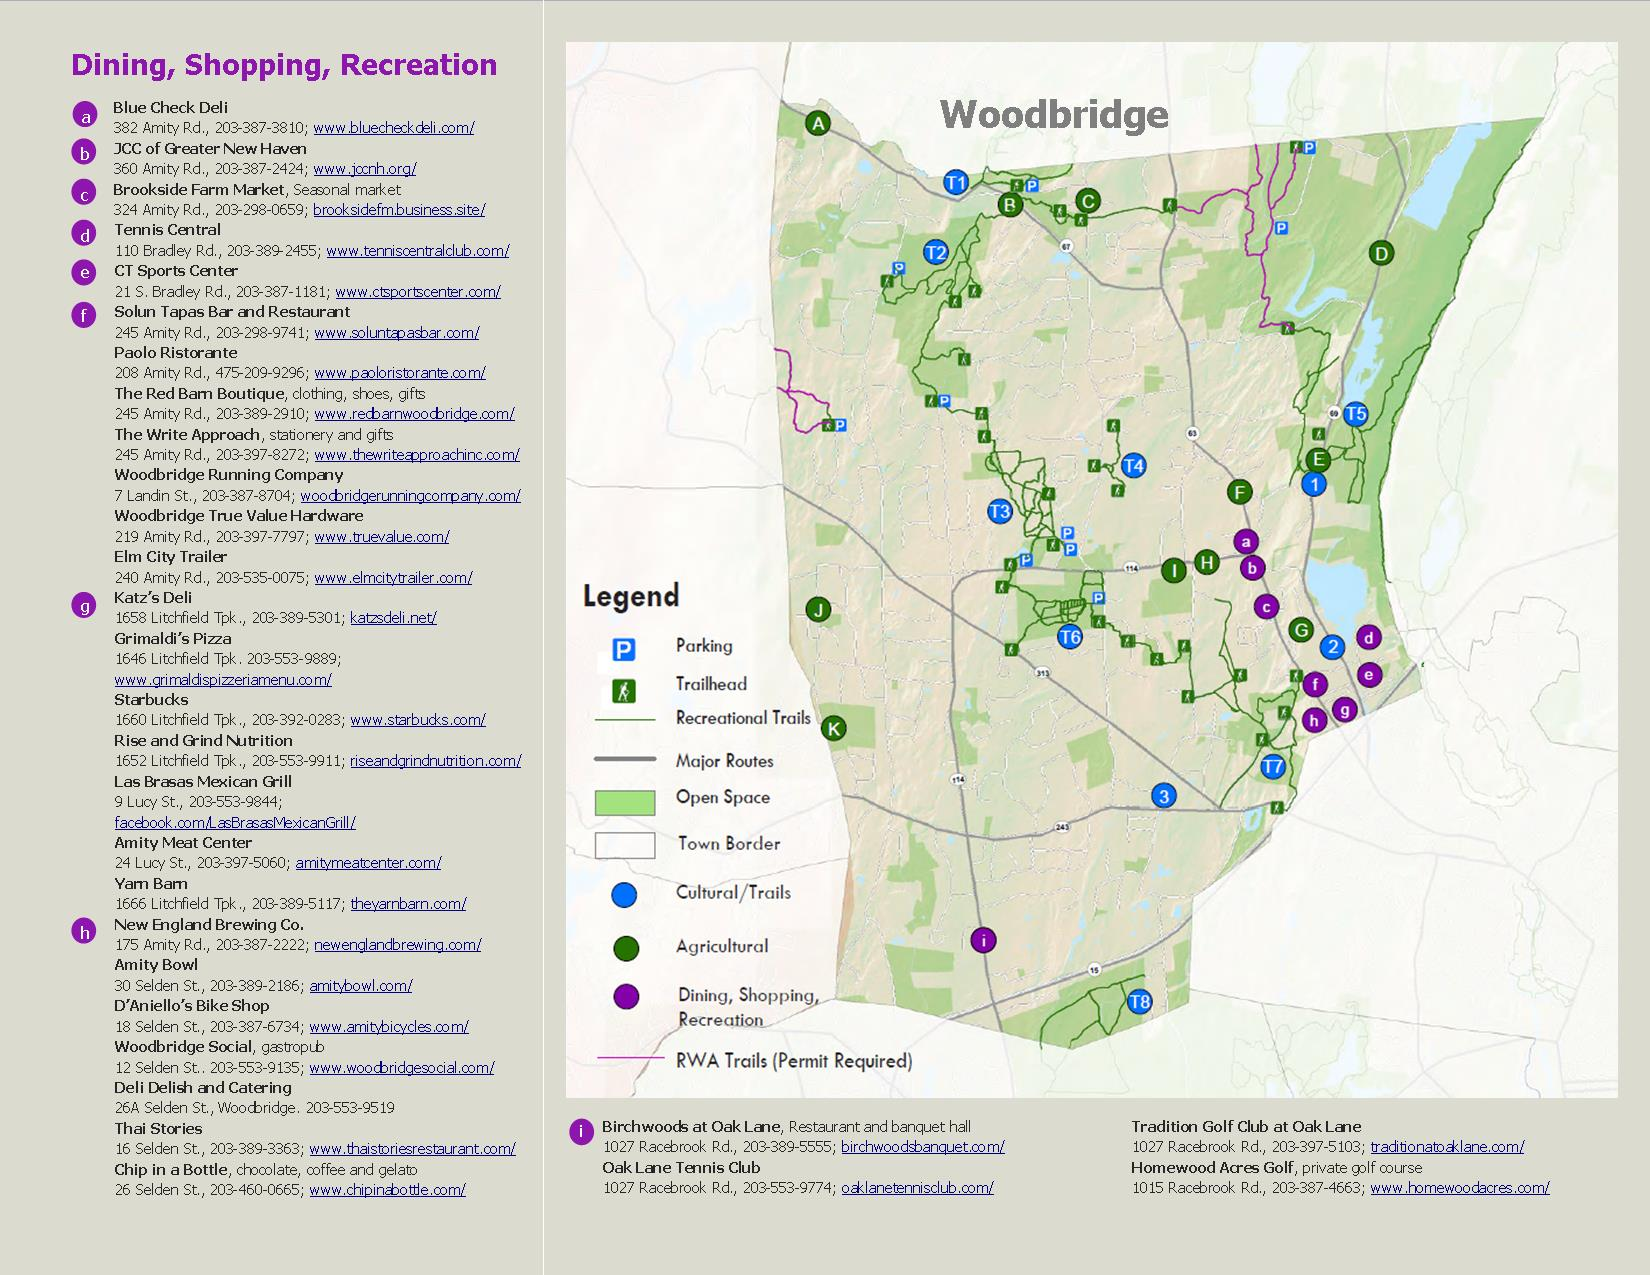 Woodbridge Agriculture, Trails and Retail Brochure page 2